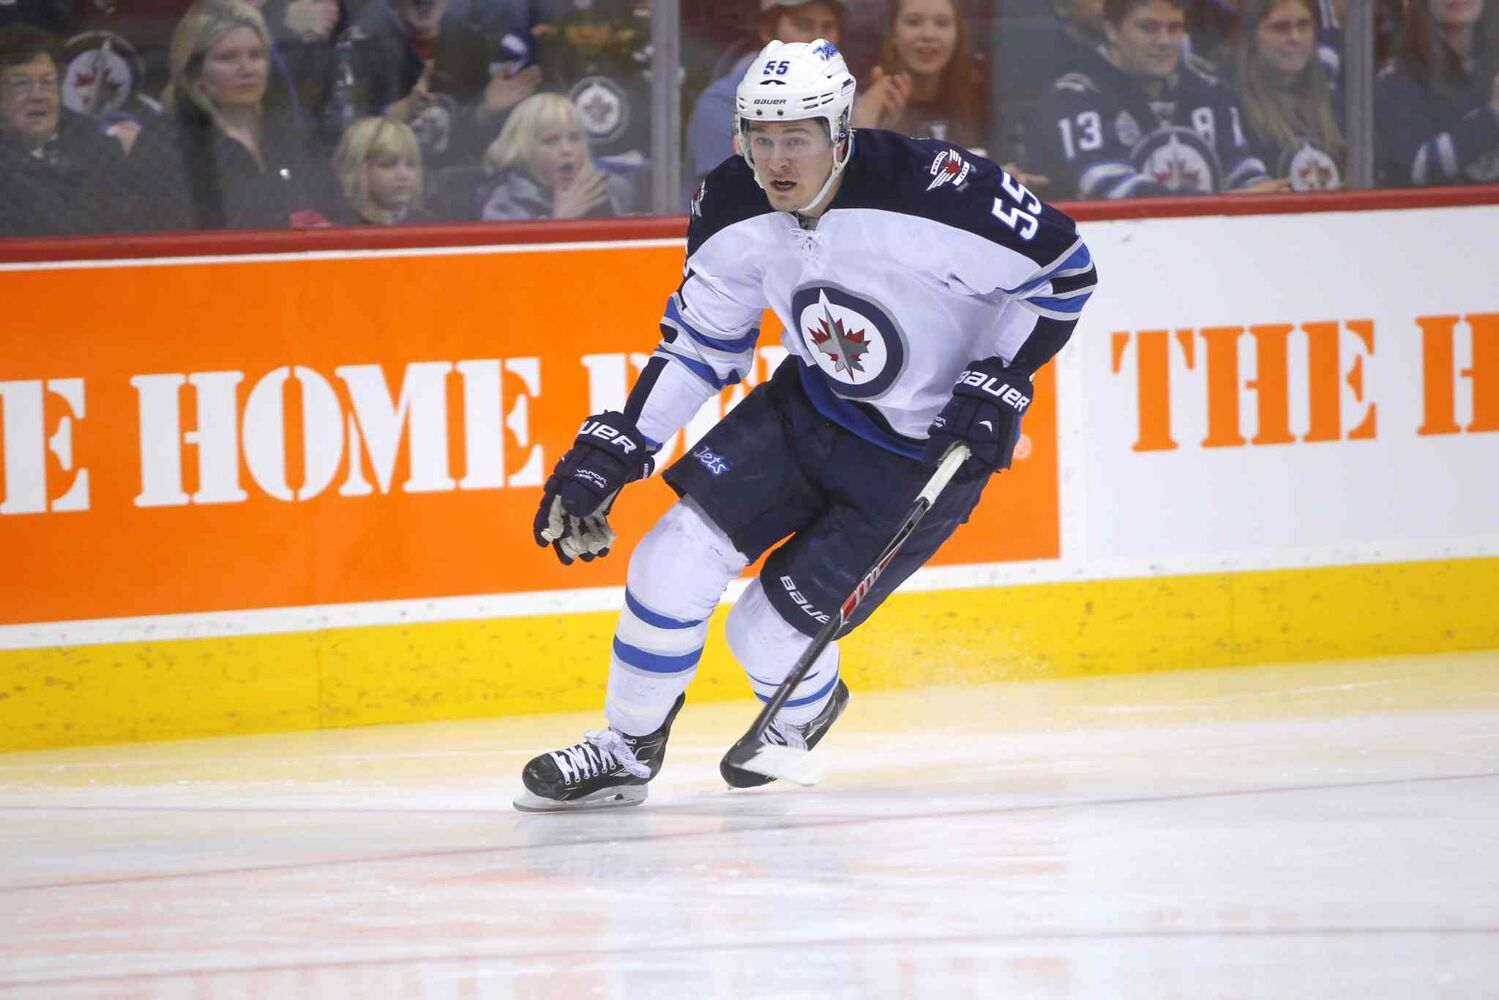 Mark Scheifele skates hard during the fastest skater competition.